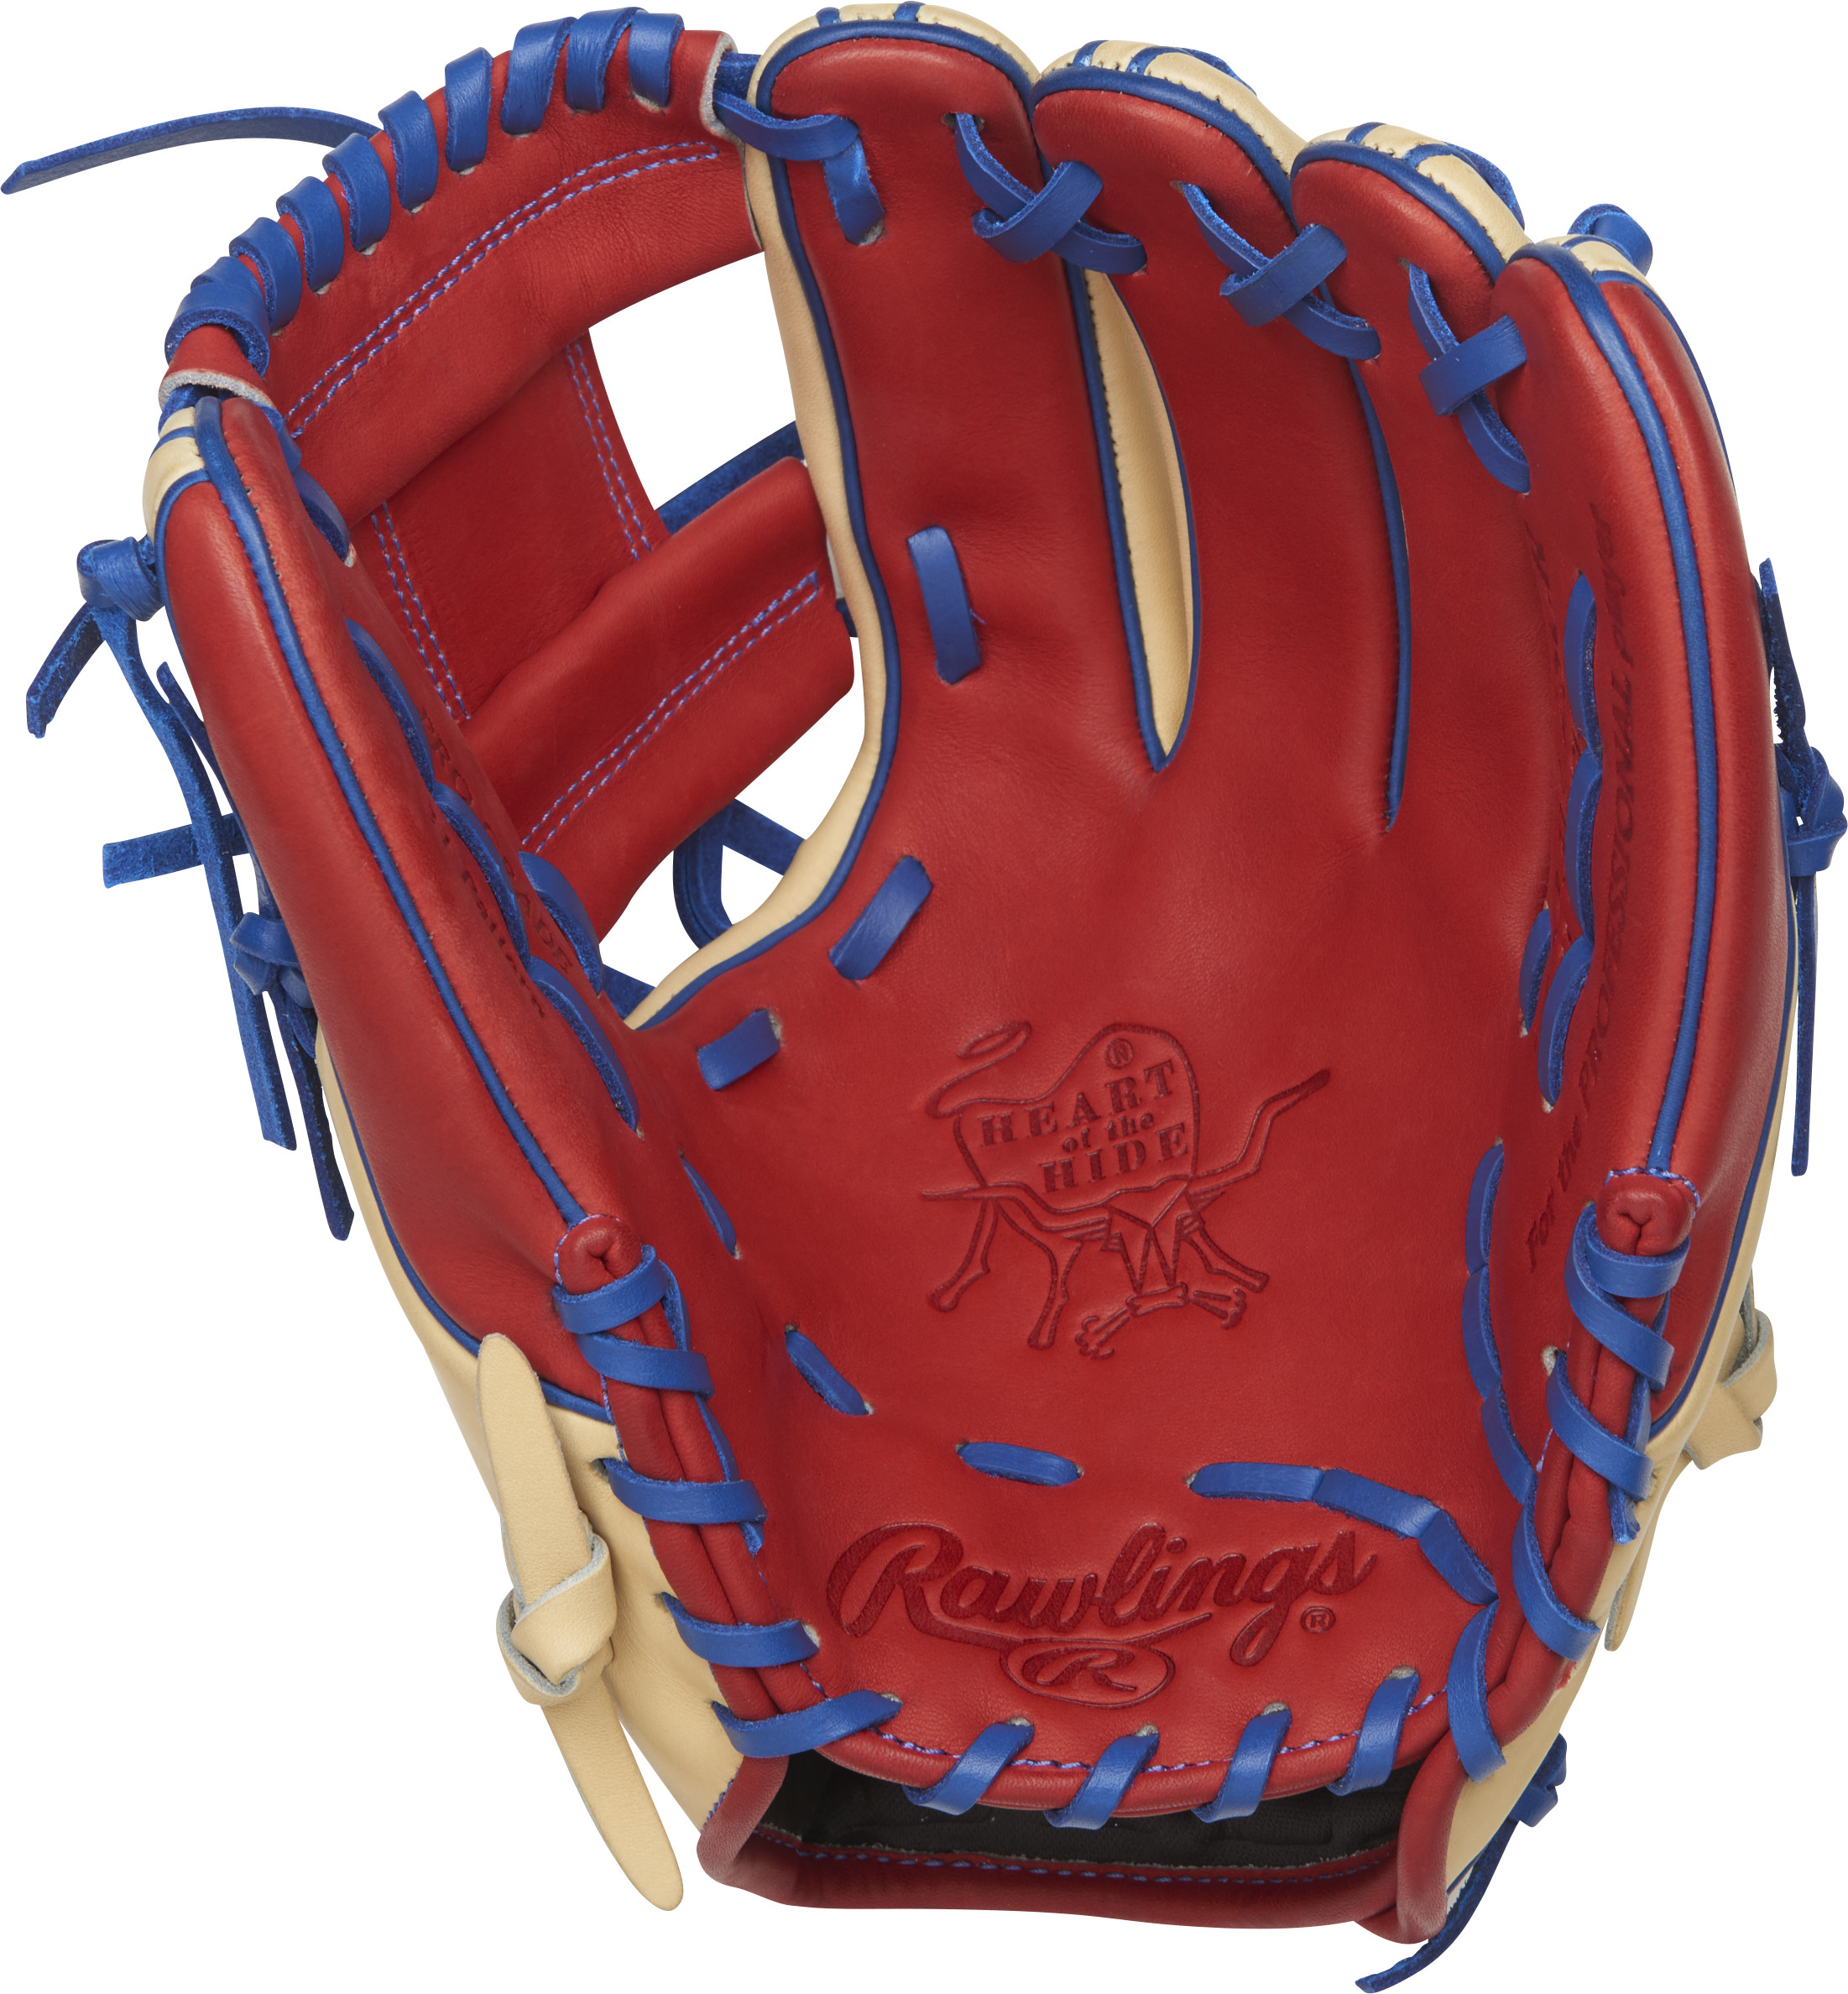 http://www.bestbatdeals.com/images/gloves/rawlings/PRO314-2SCR-1.jpg